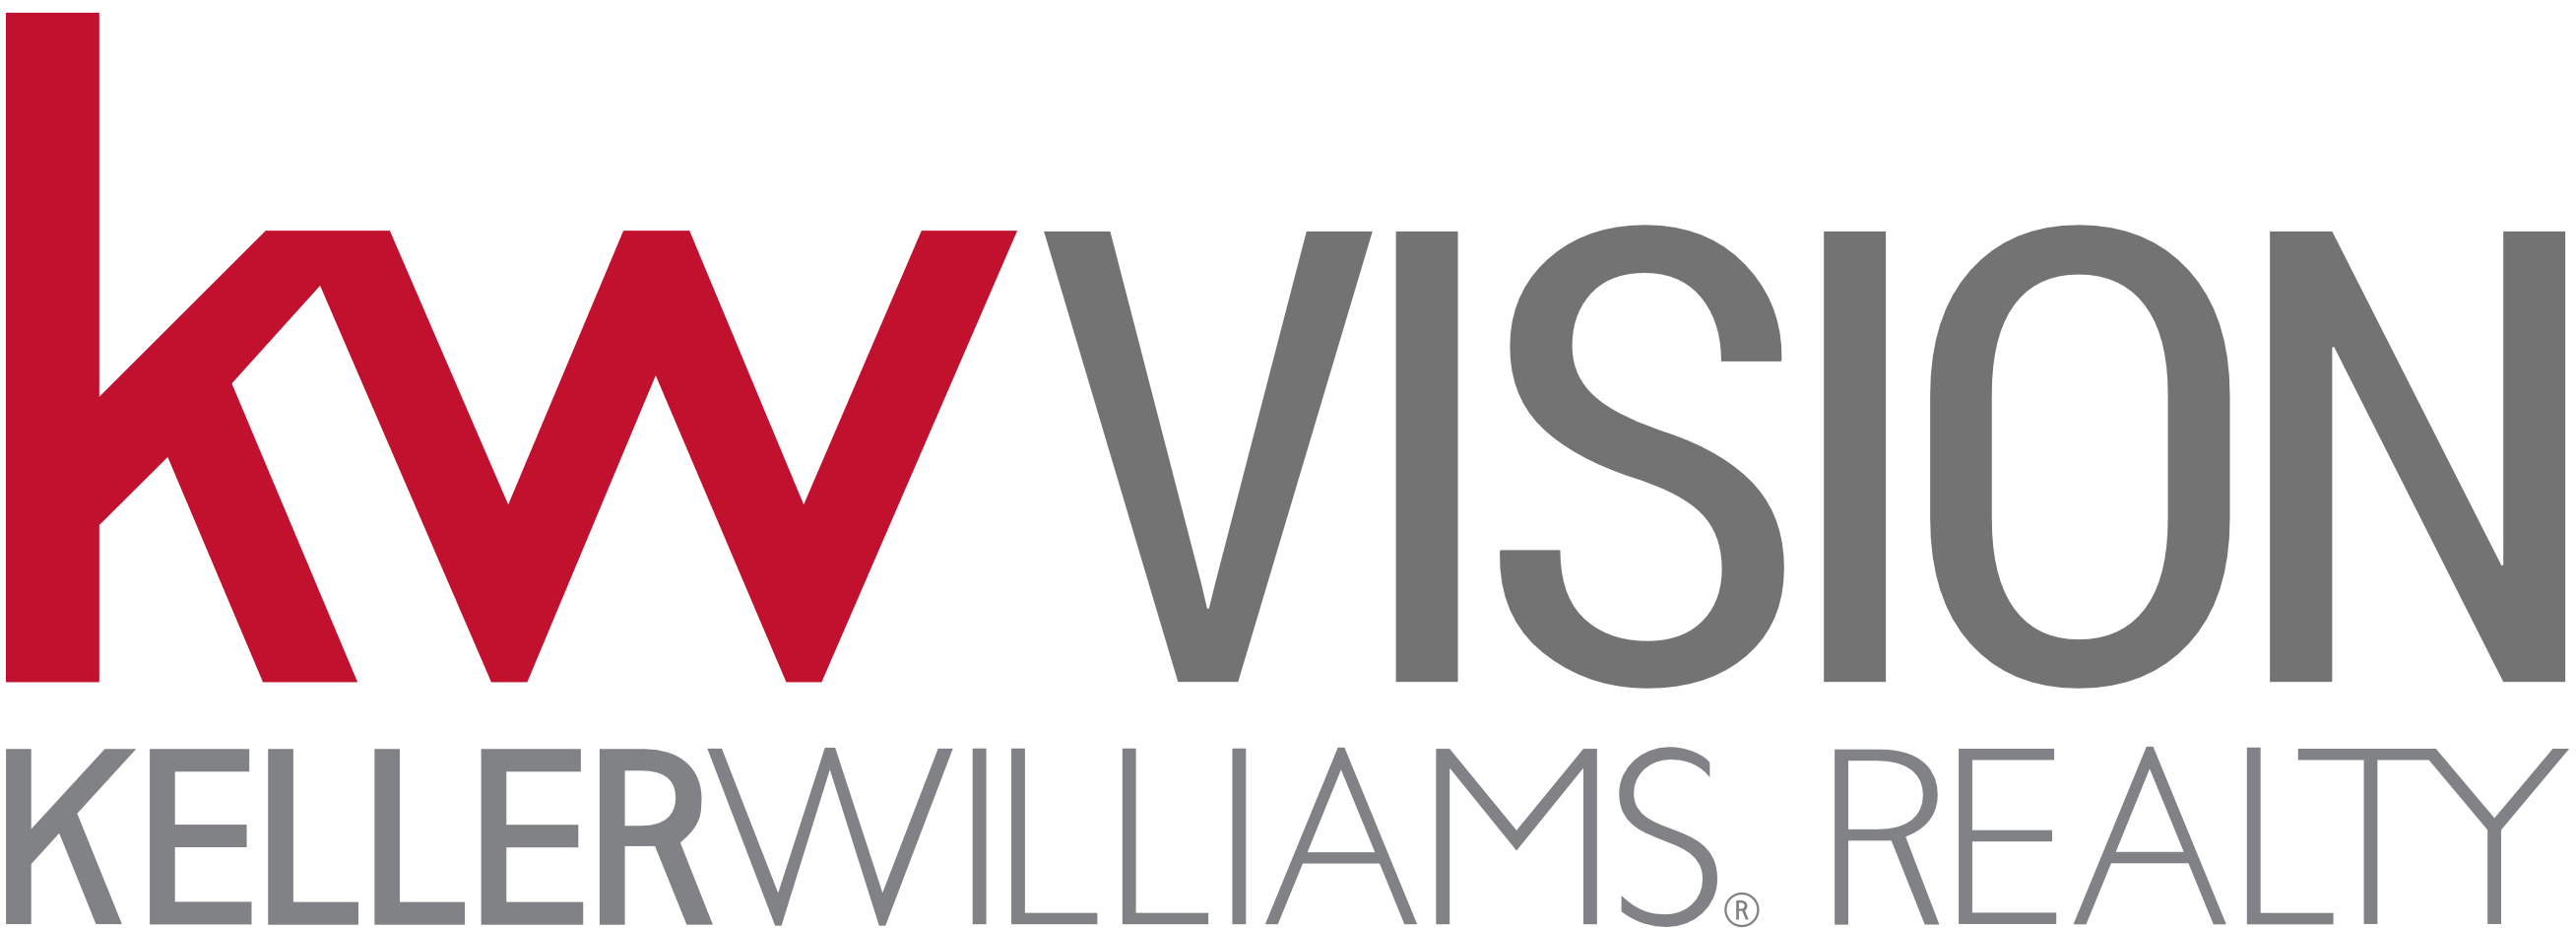 Keller Williams Realty- KW Vision, Andy Yuan